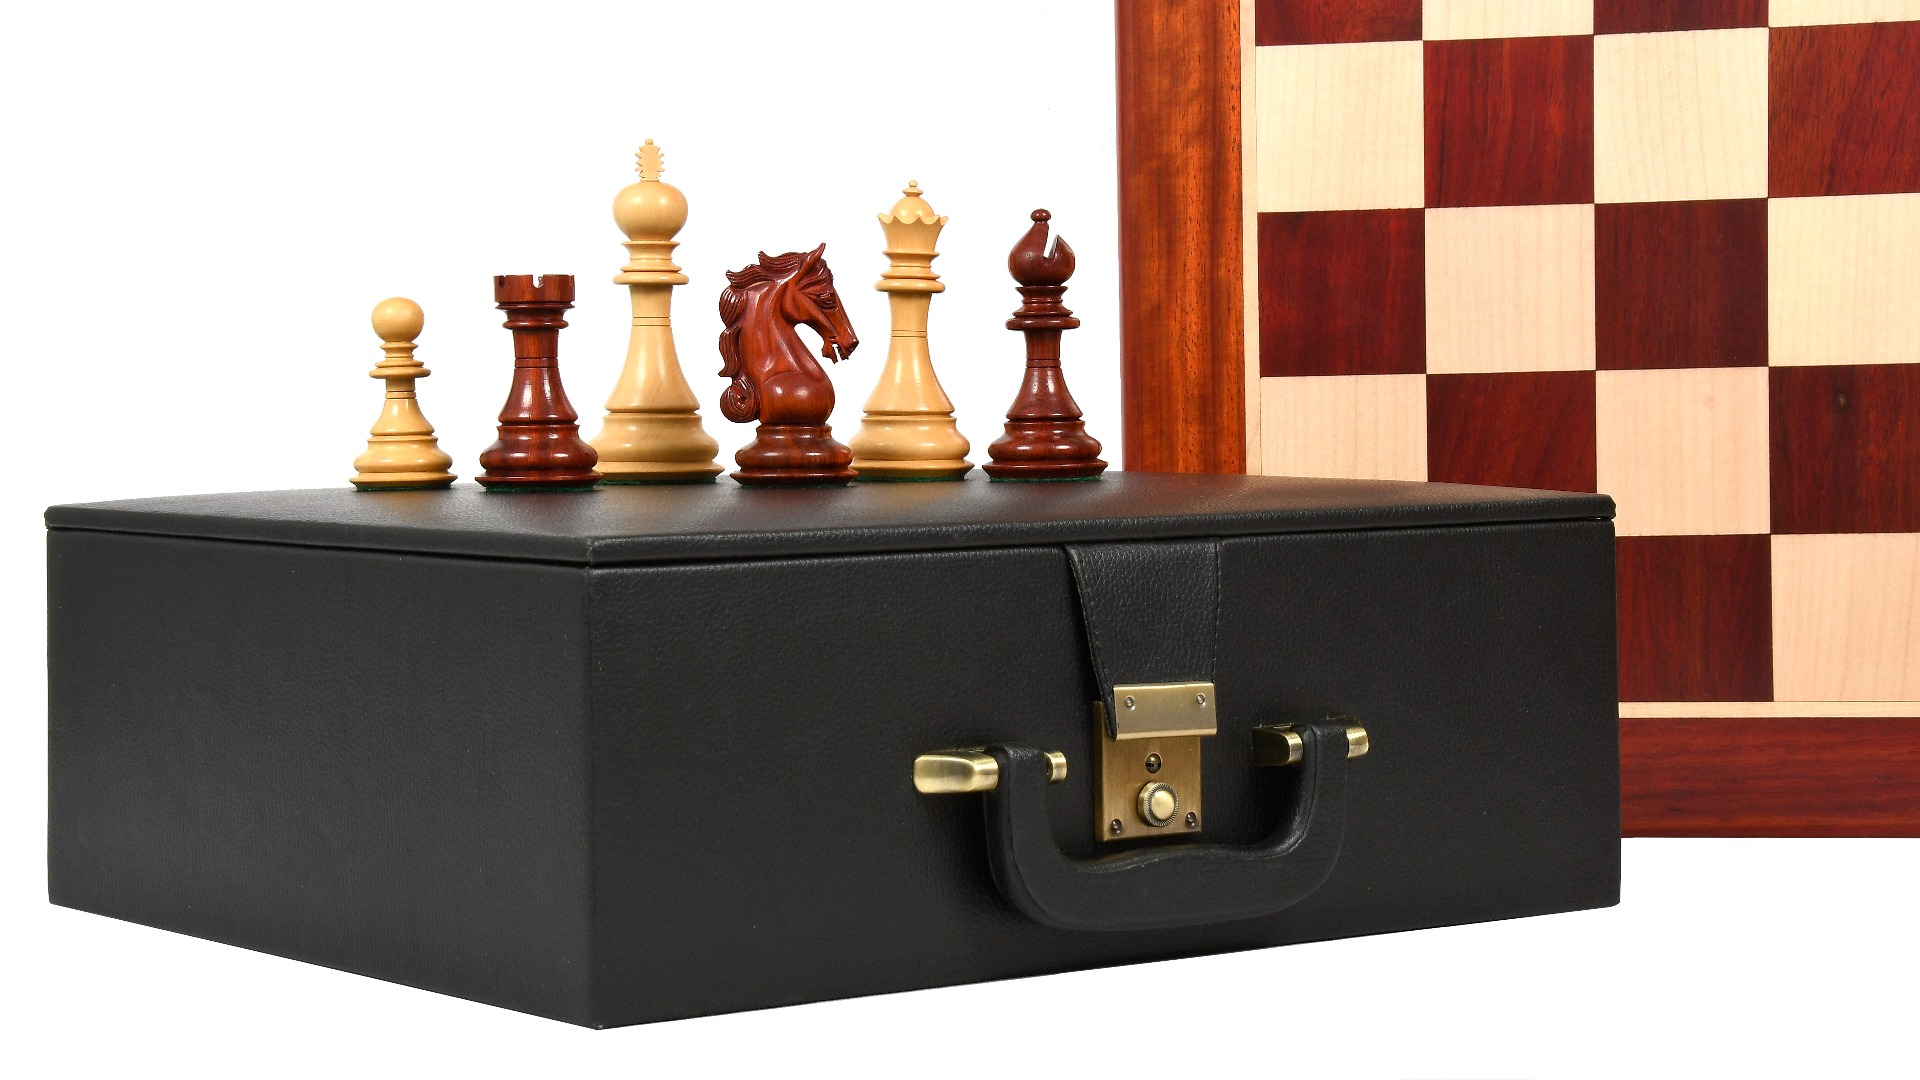 """Combo of The Shera Series Staunton Triple Weighted Chess Pieces V2.0 in Bud Rose / Box Wood - 4.4"""" King with Wooden Chess Board & Storage box"""